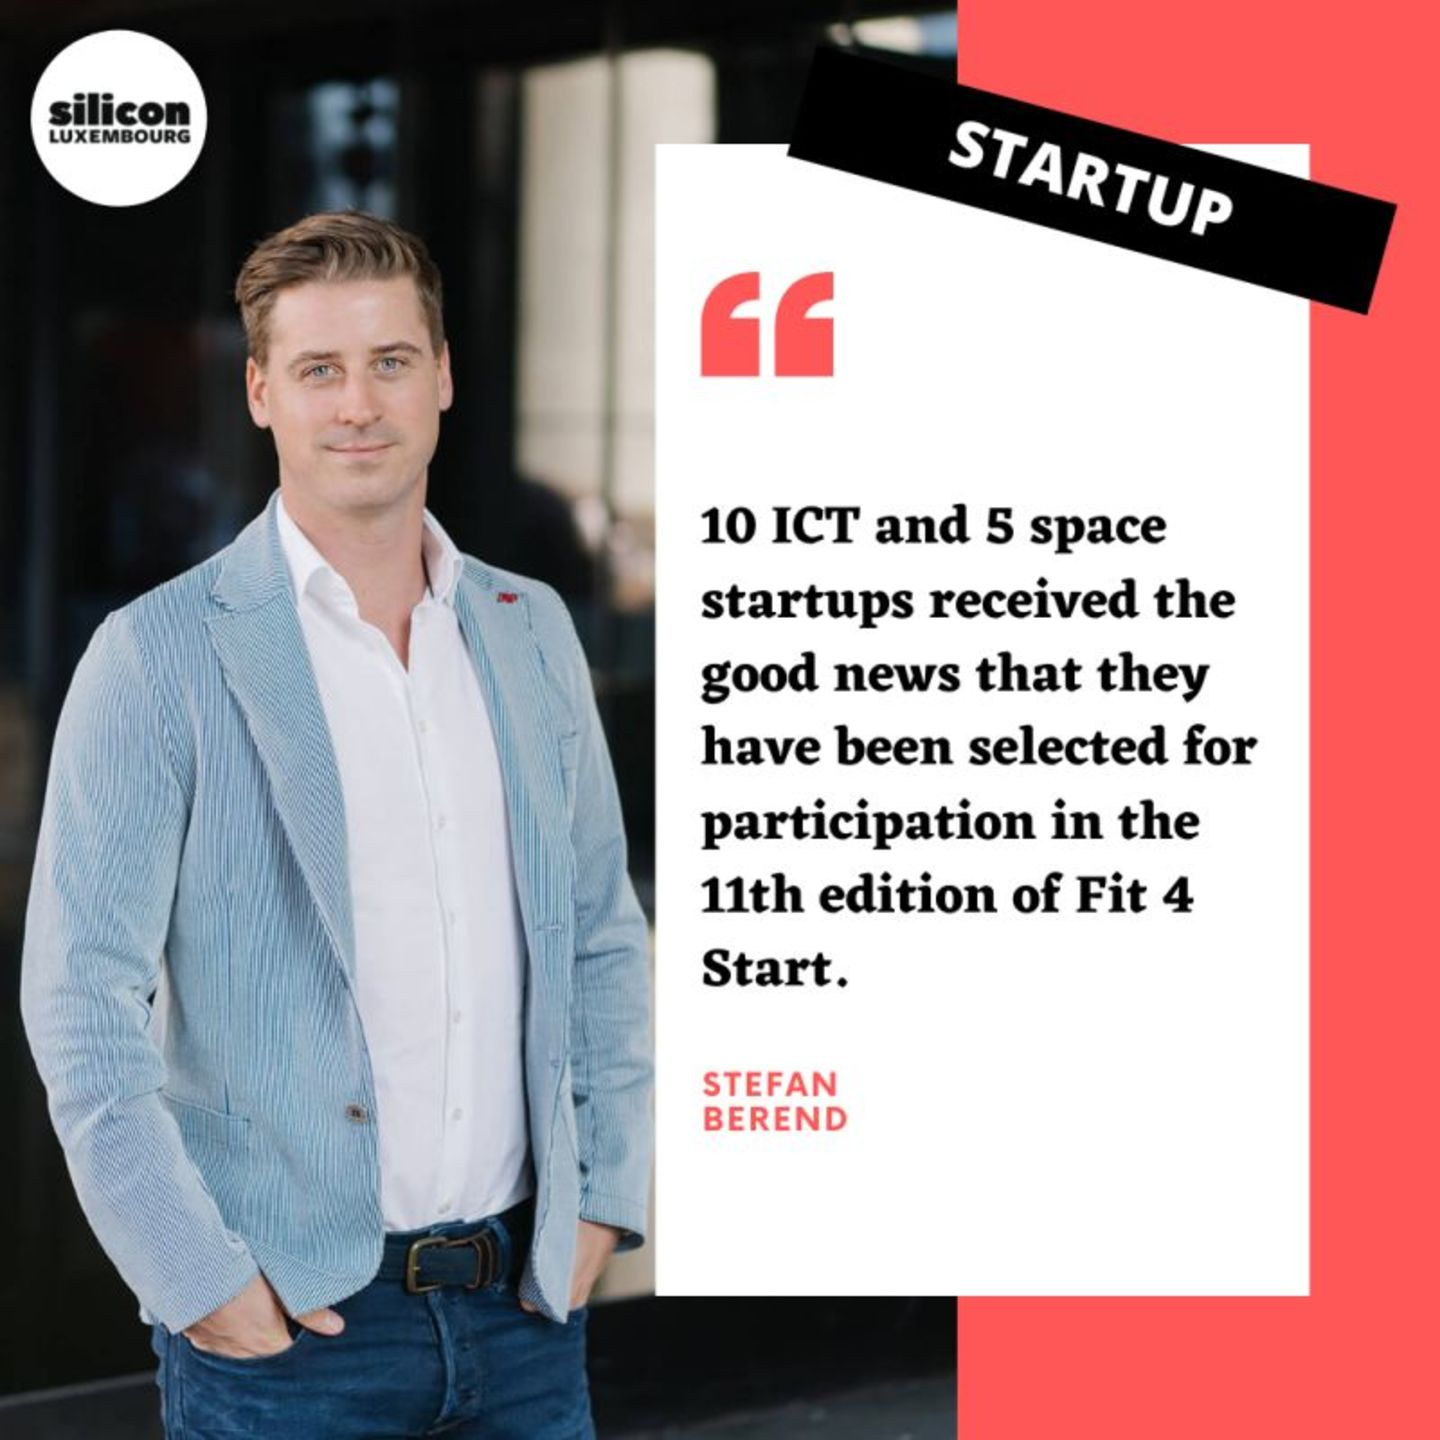 kodehyve Amongst 15 Startups Selected for Fit 4 Start